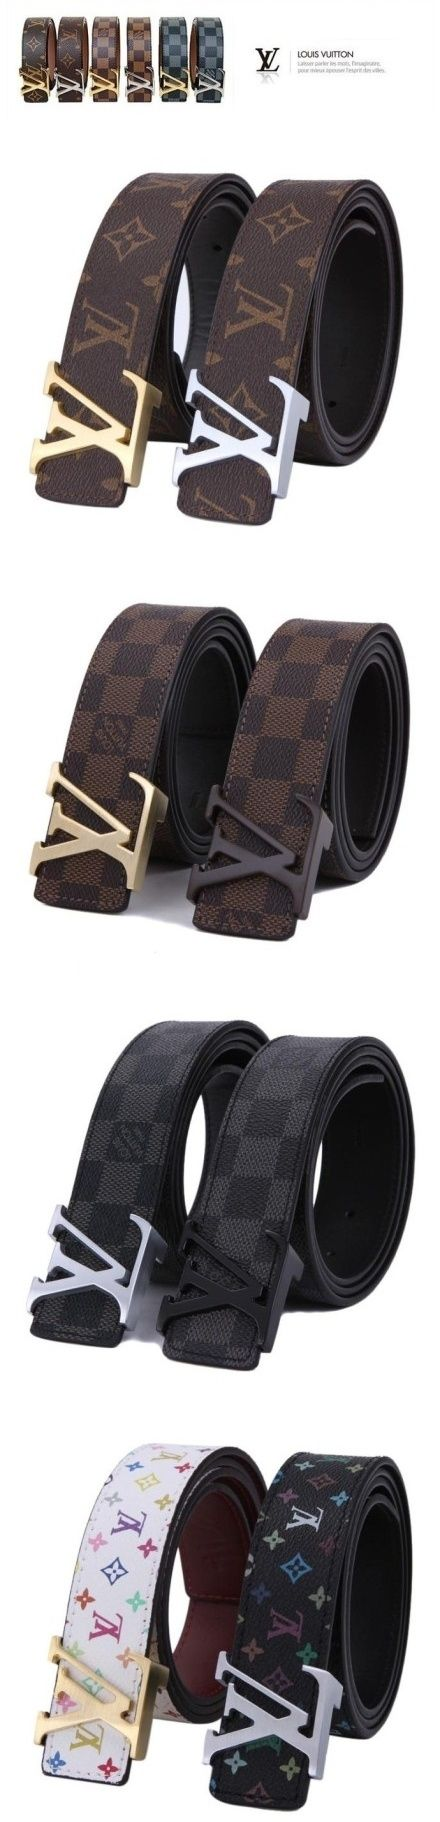 #LouisVuitton #Luxurydotcom